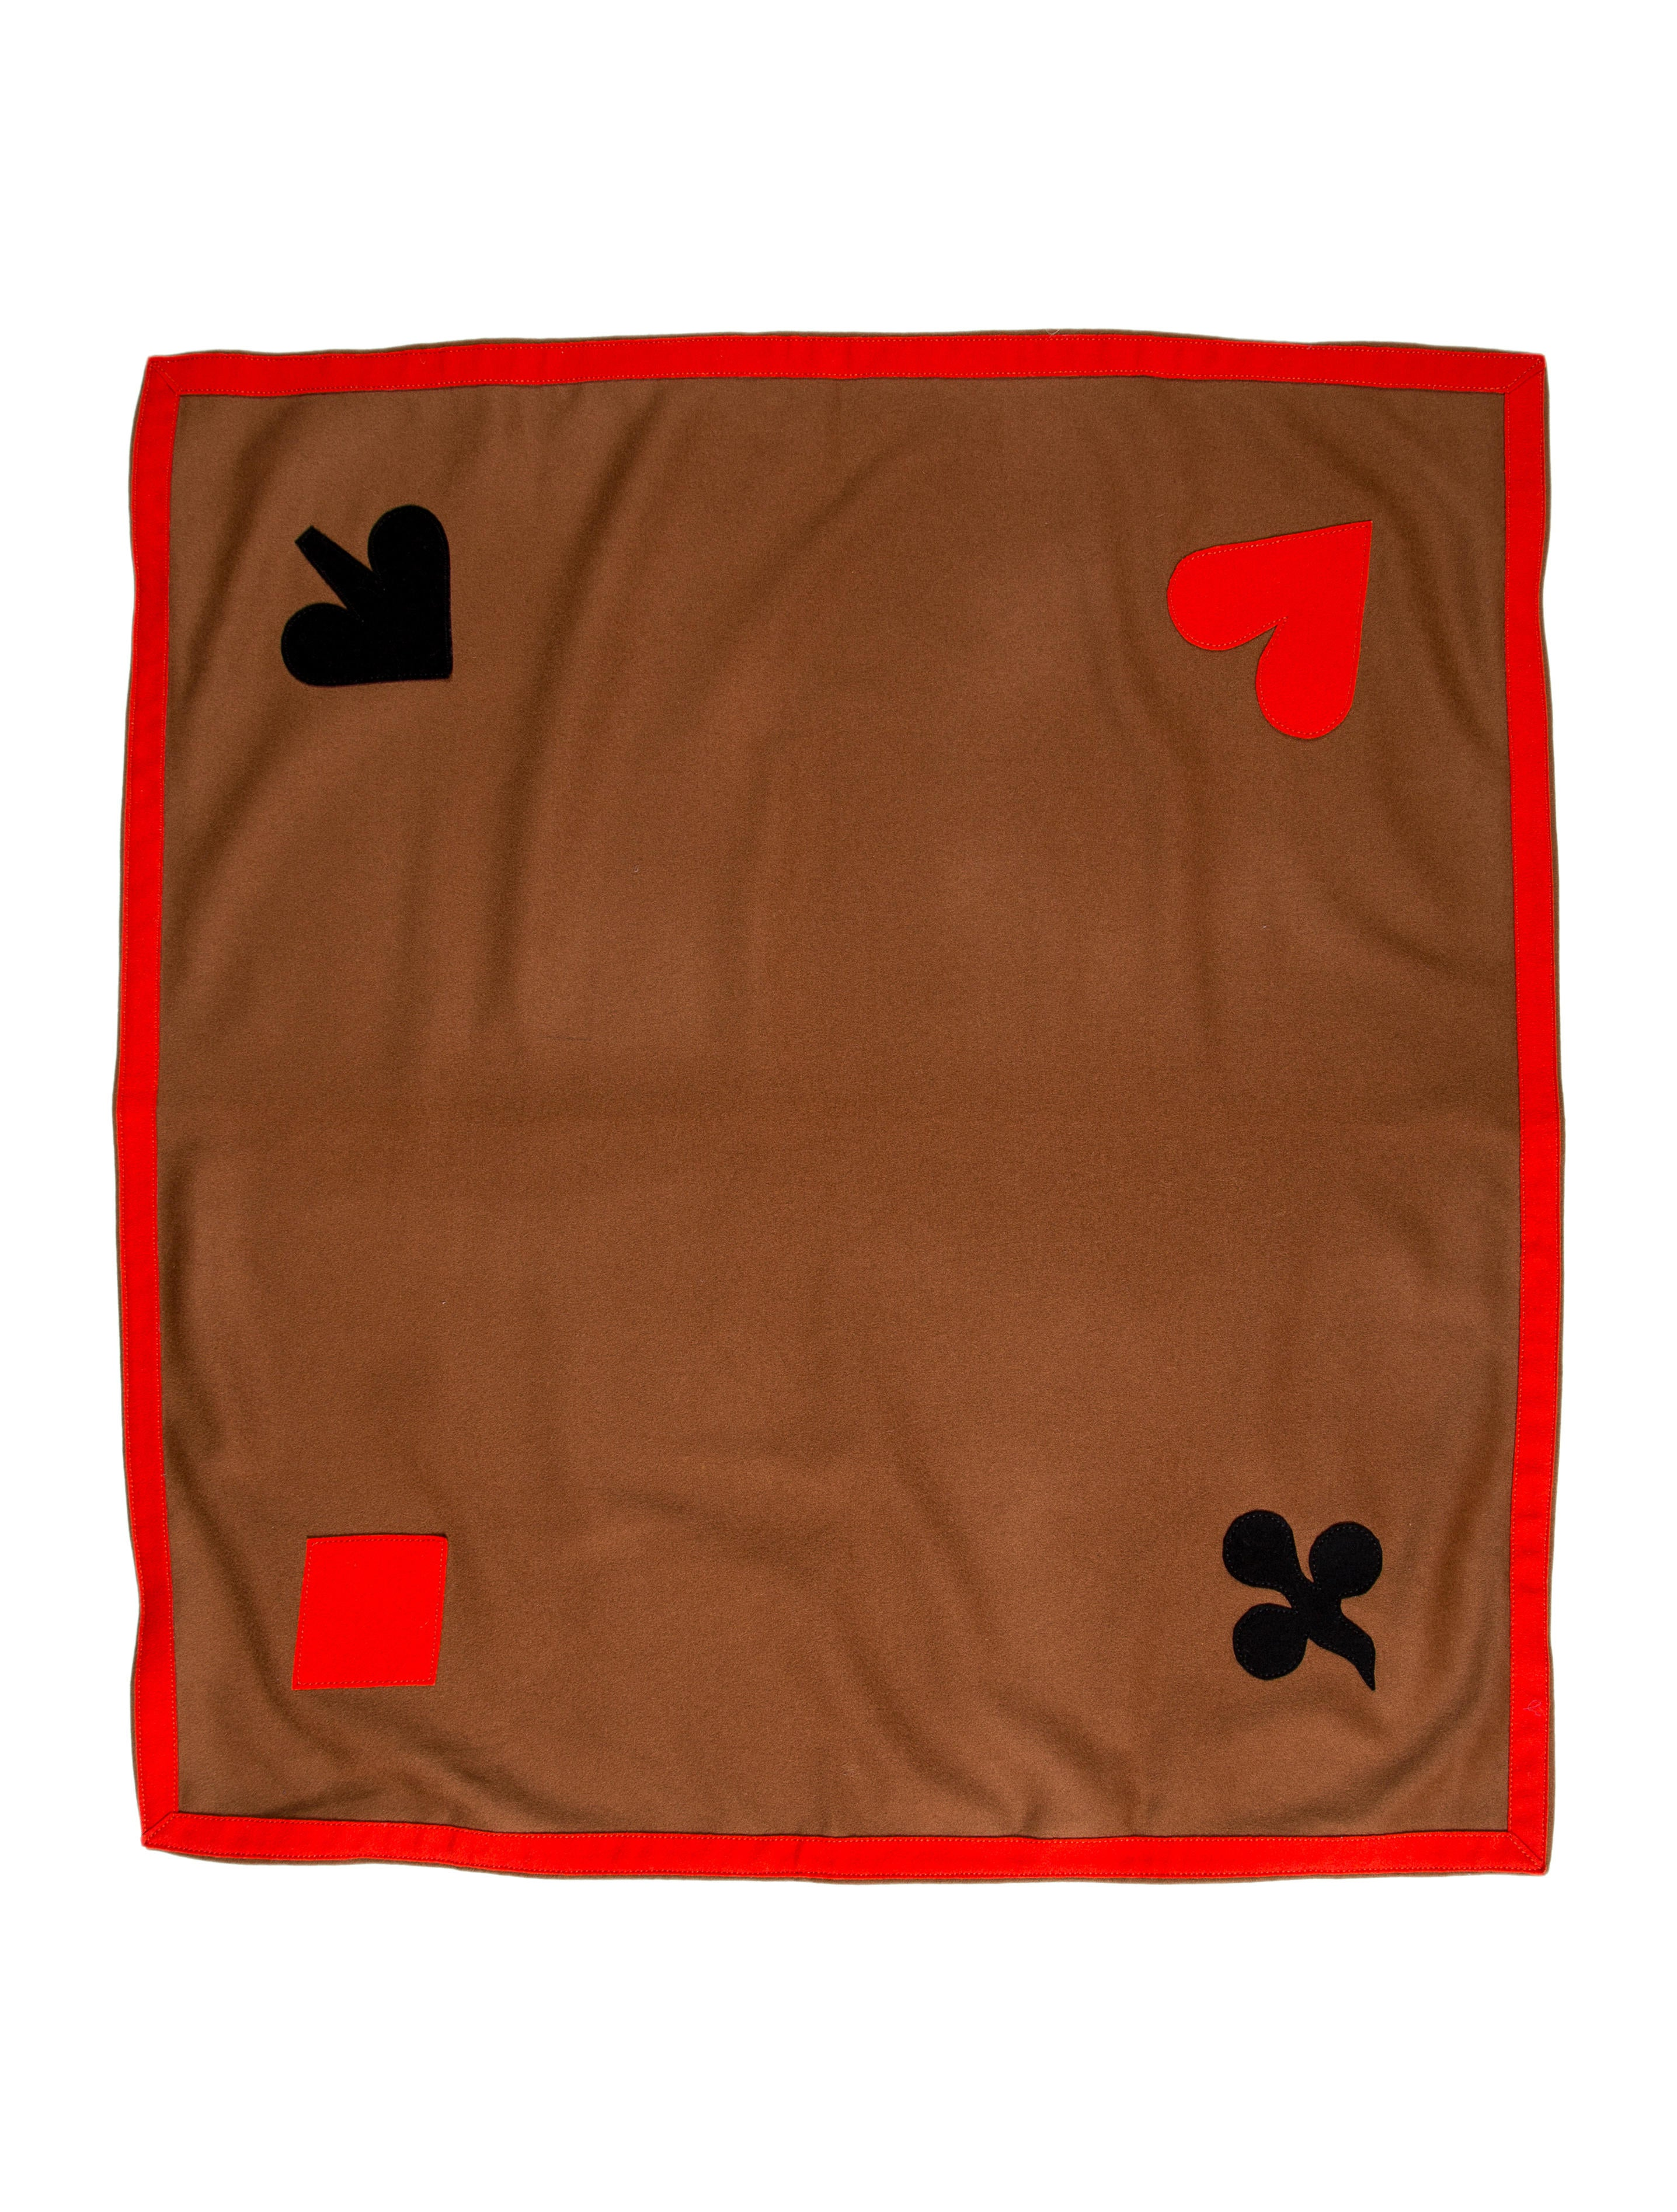 Felt Playing Card Table Cover